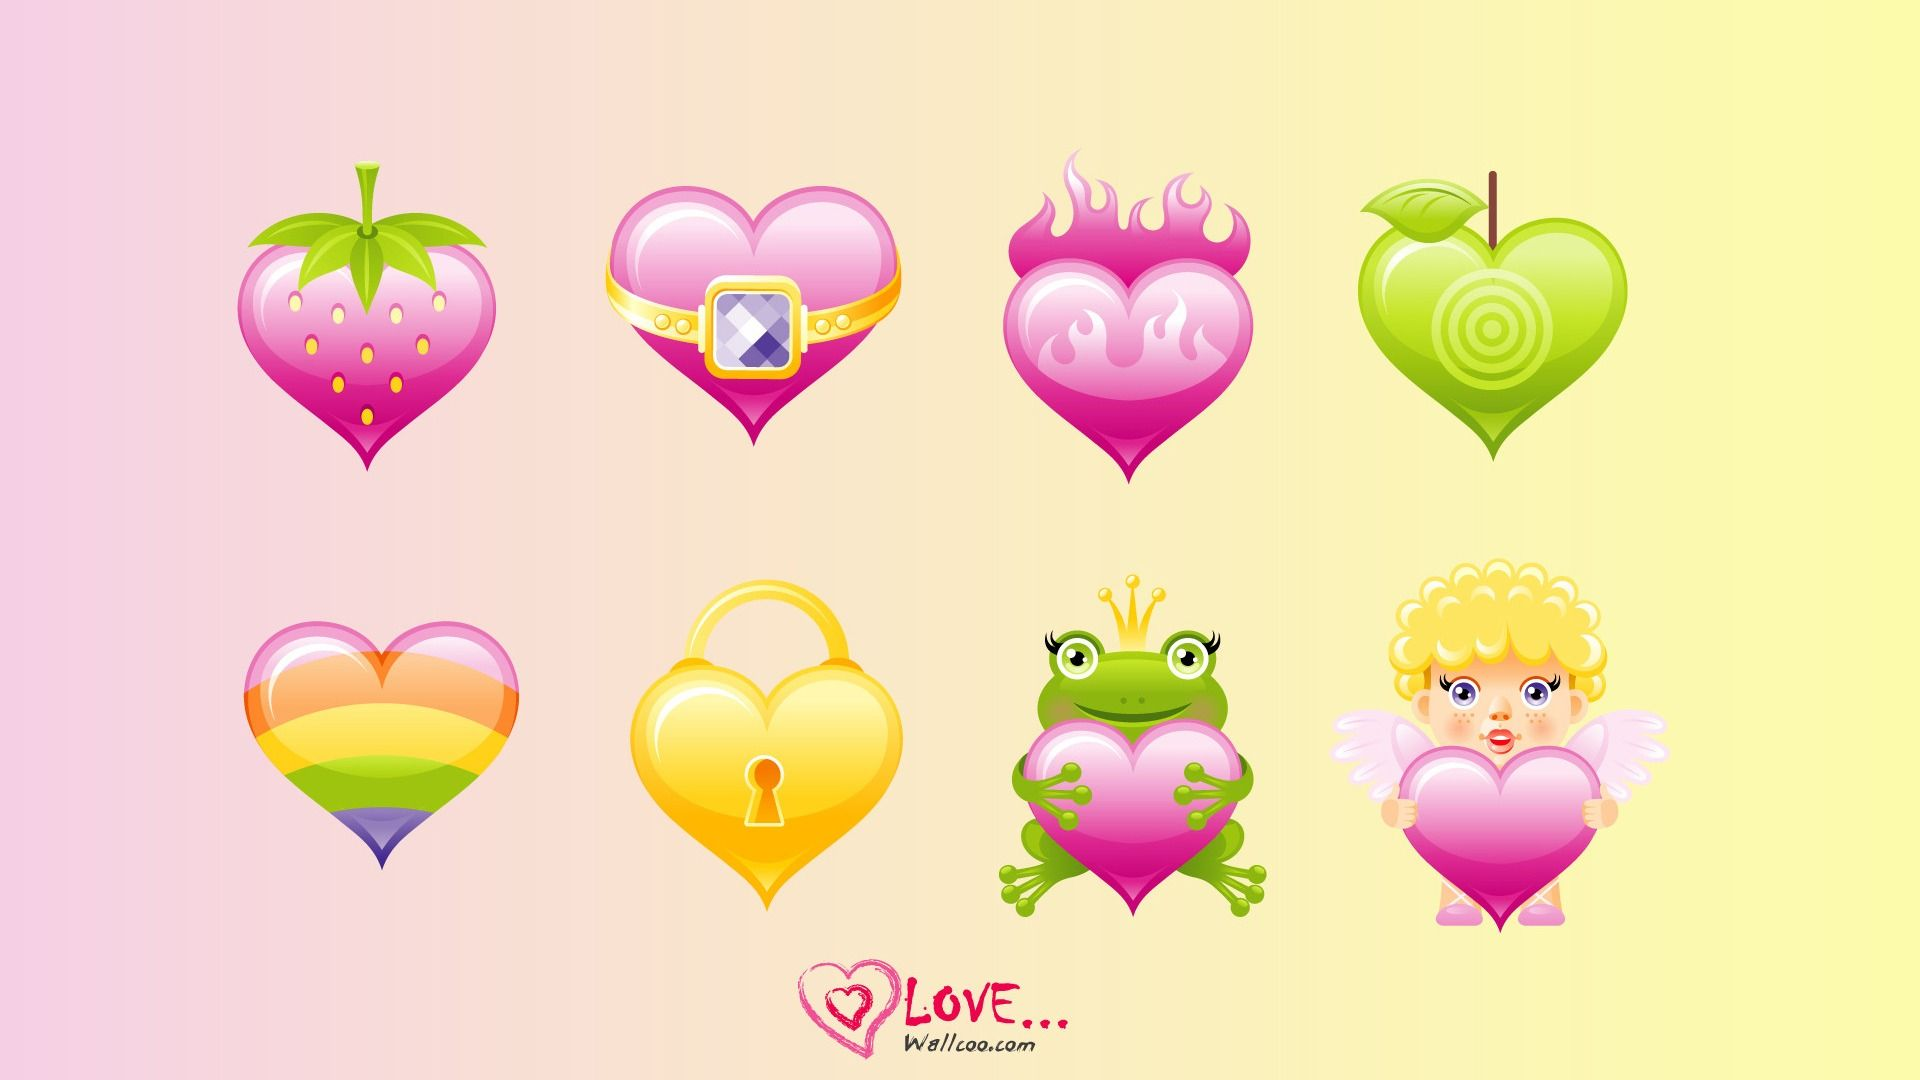 Read These Cute Love Quotes And Quotations Use Them On Greetings Cards Or Send Message Mobiles